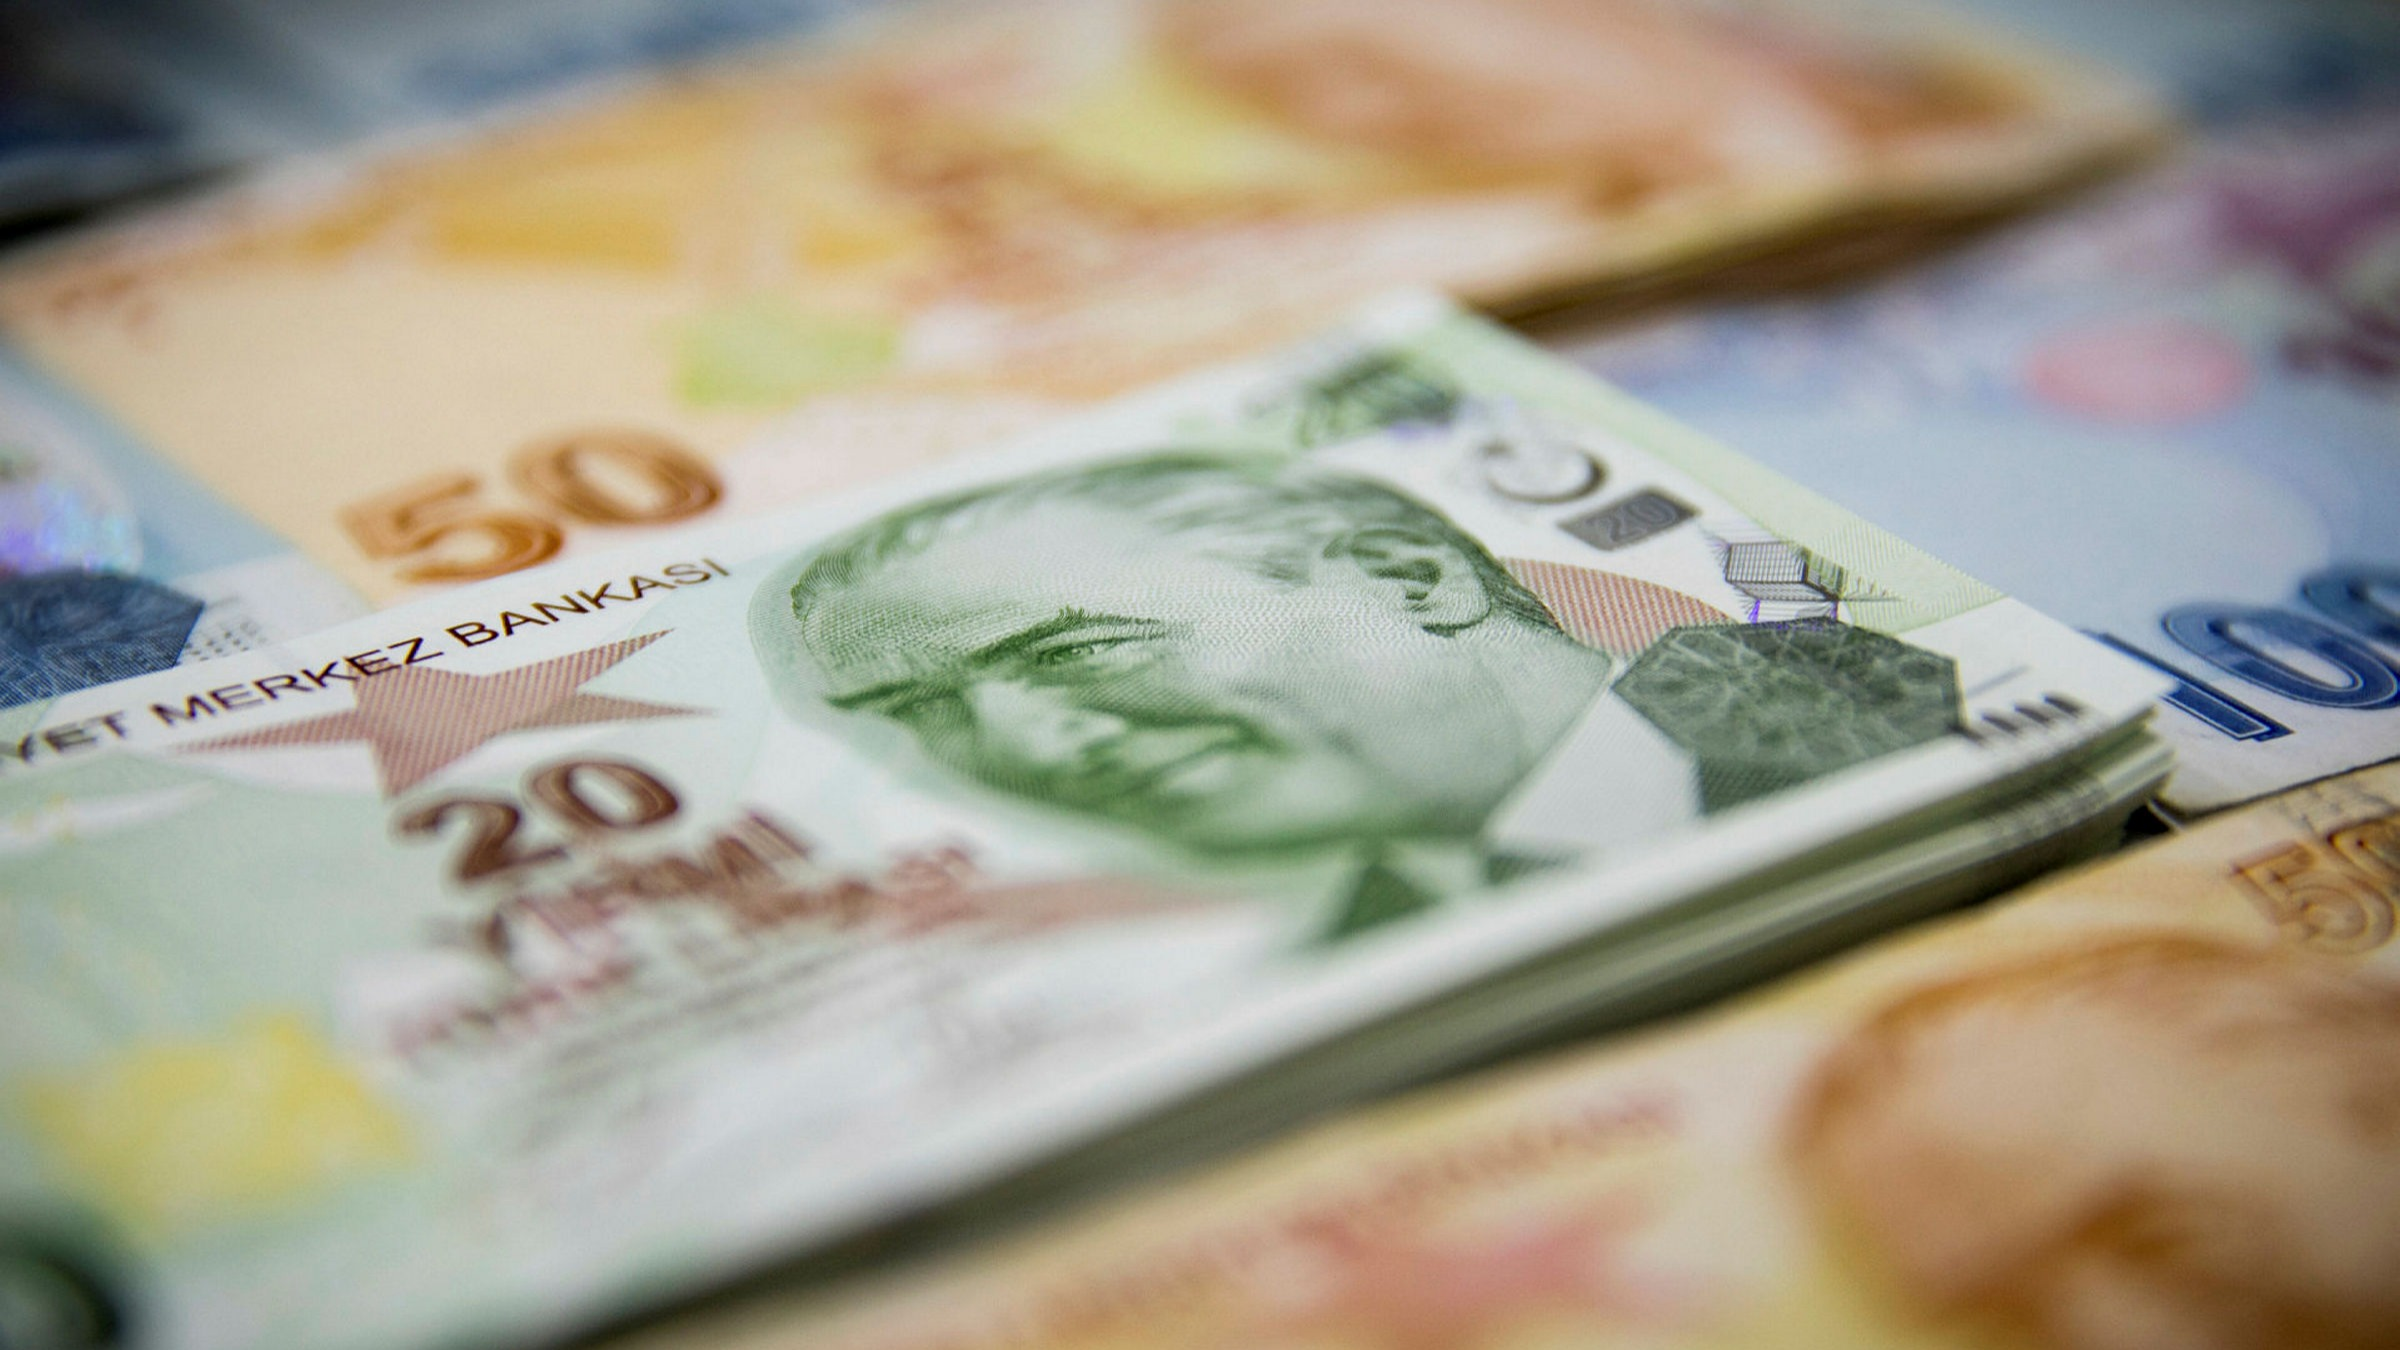 The Turkish lira dropped as much as 1.6 per cent on Tuesday to 6.97 against the dollar, the weakest level since April